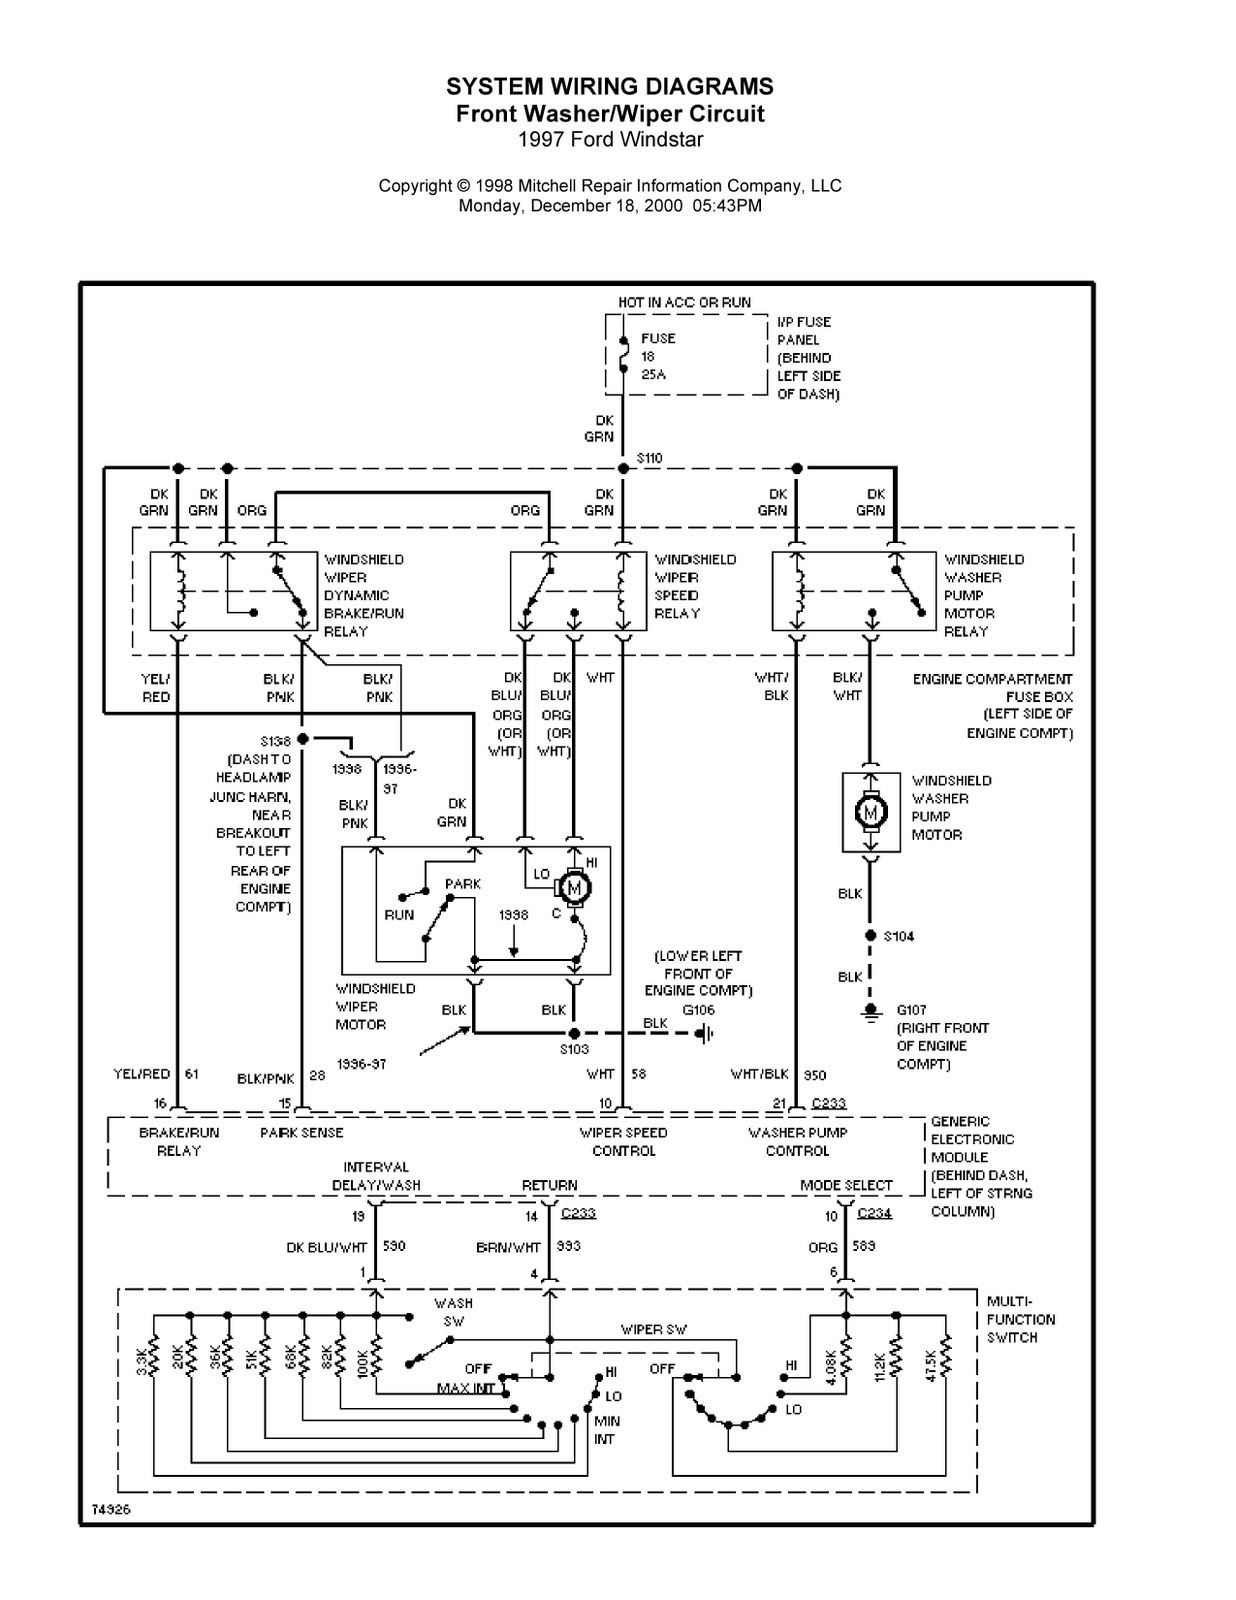 0051 1997 ford windstar complete system wiring diagrams wiring  at edmiracle.co